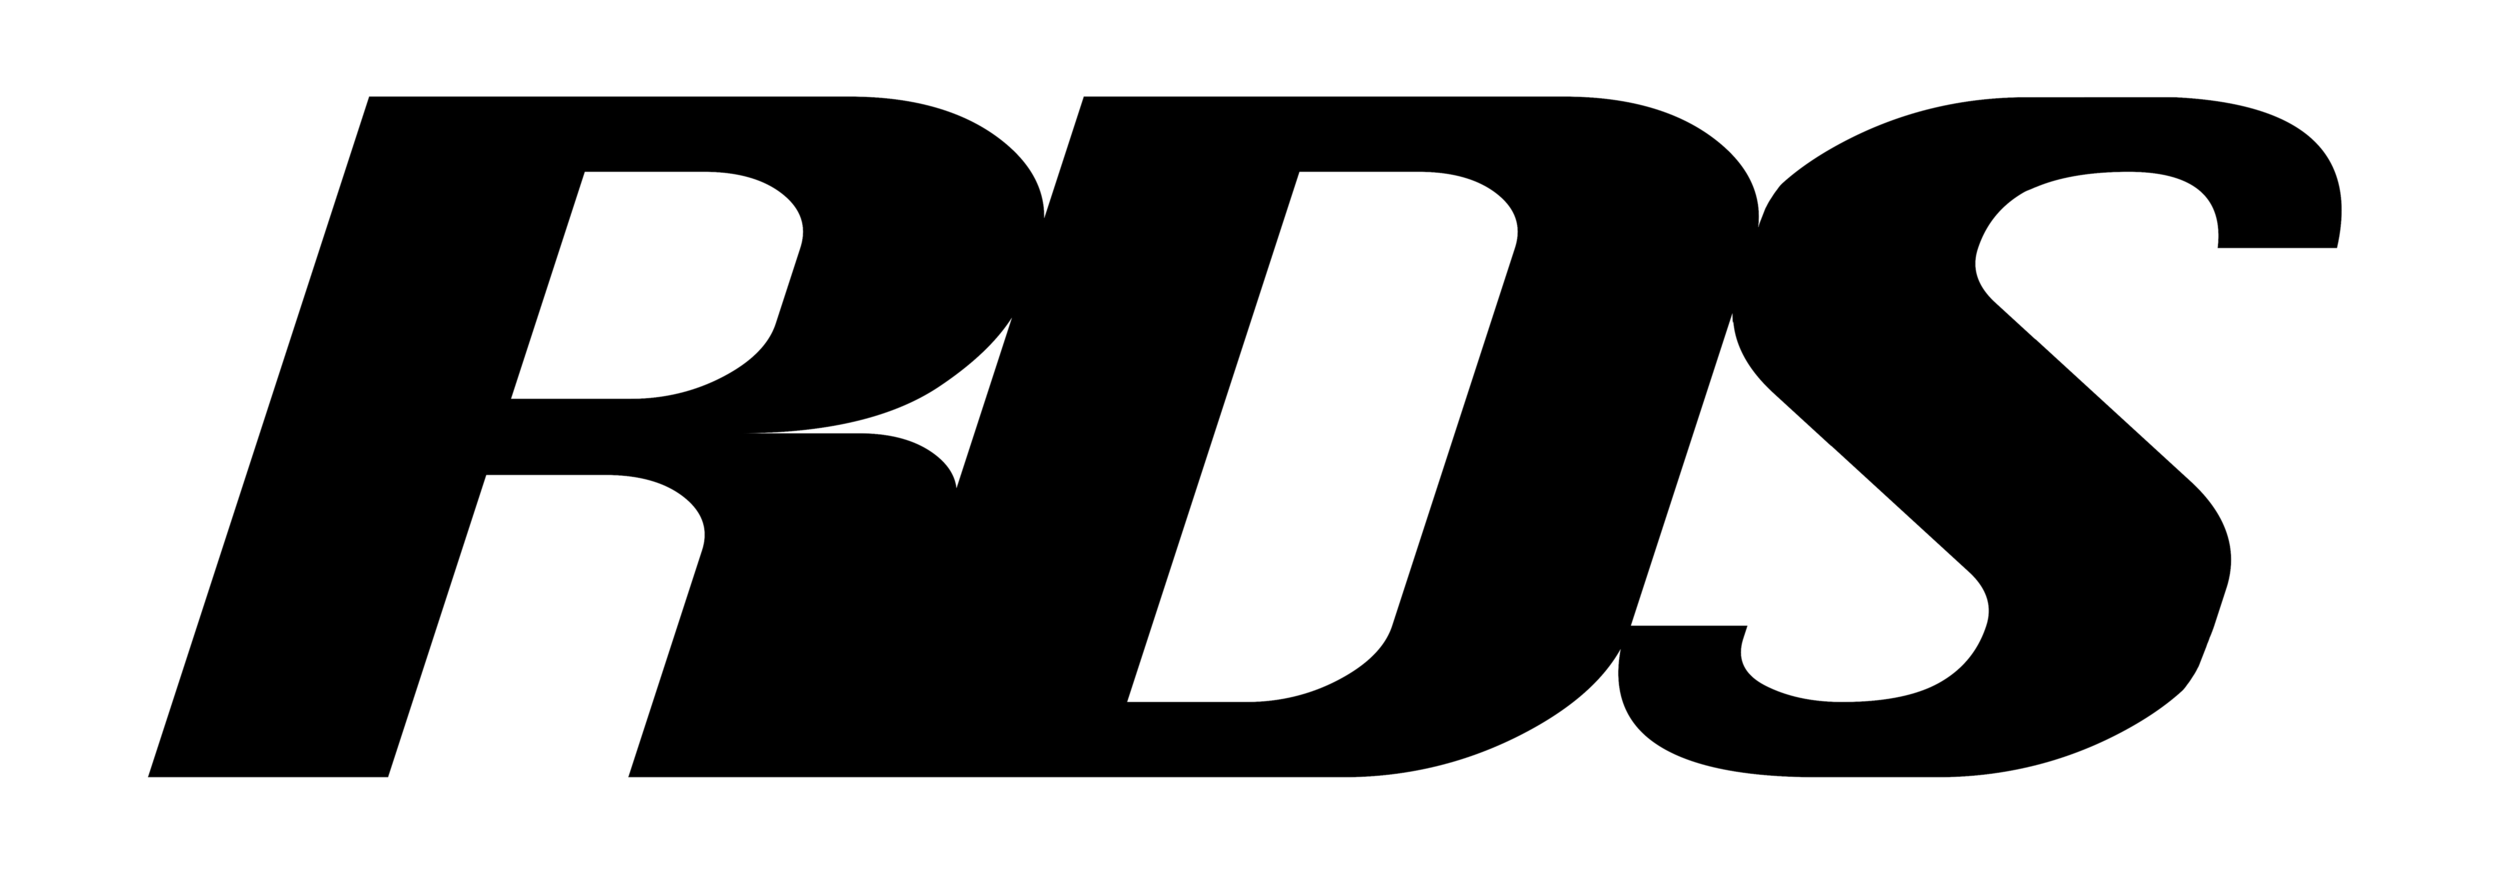 RDS_BASE_LOGO copy.png